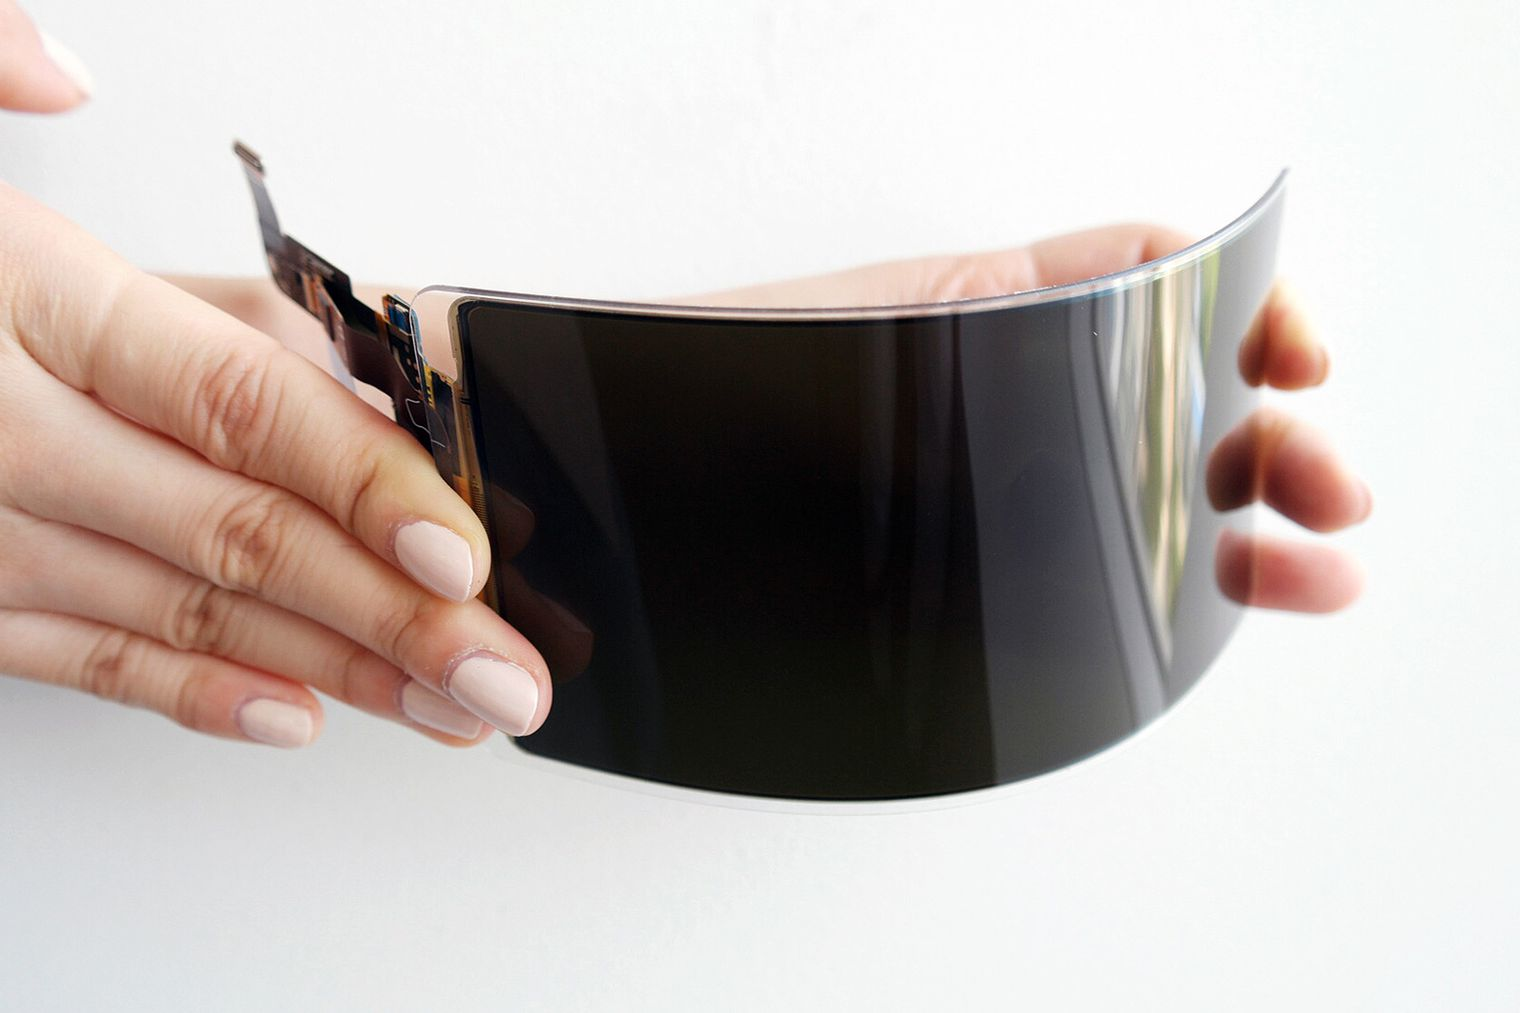 Samsung Display passes drop tests with new flexible OLED panel